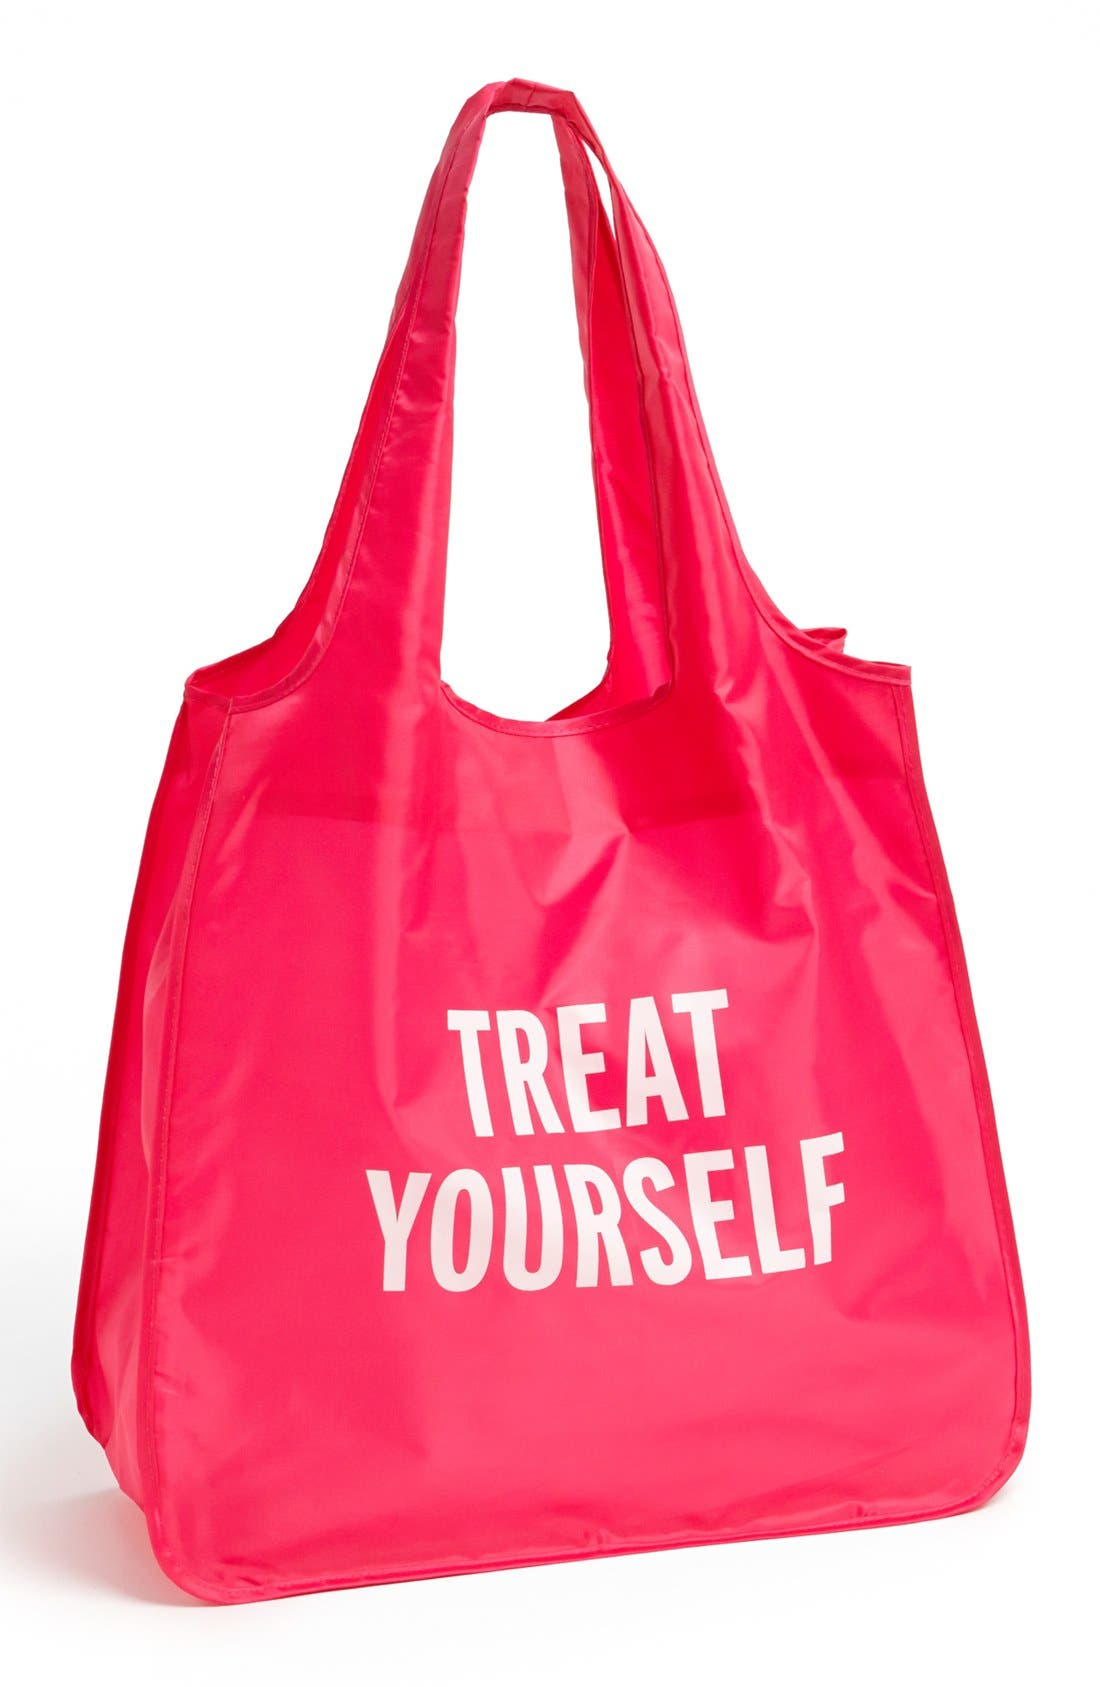 Alternate Image 1 Selected - kate spade new york 'treat yourself' reusable shopping tote